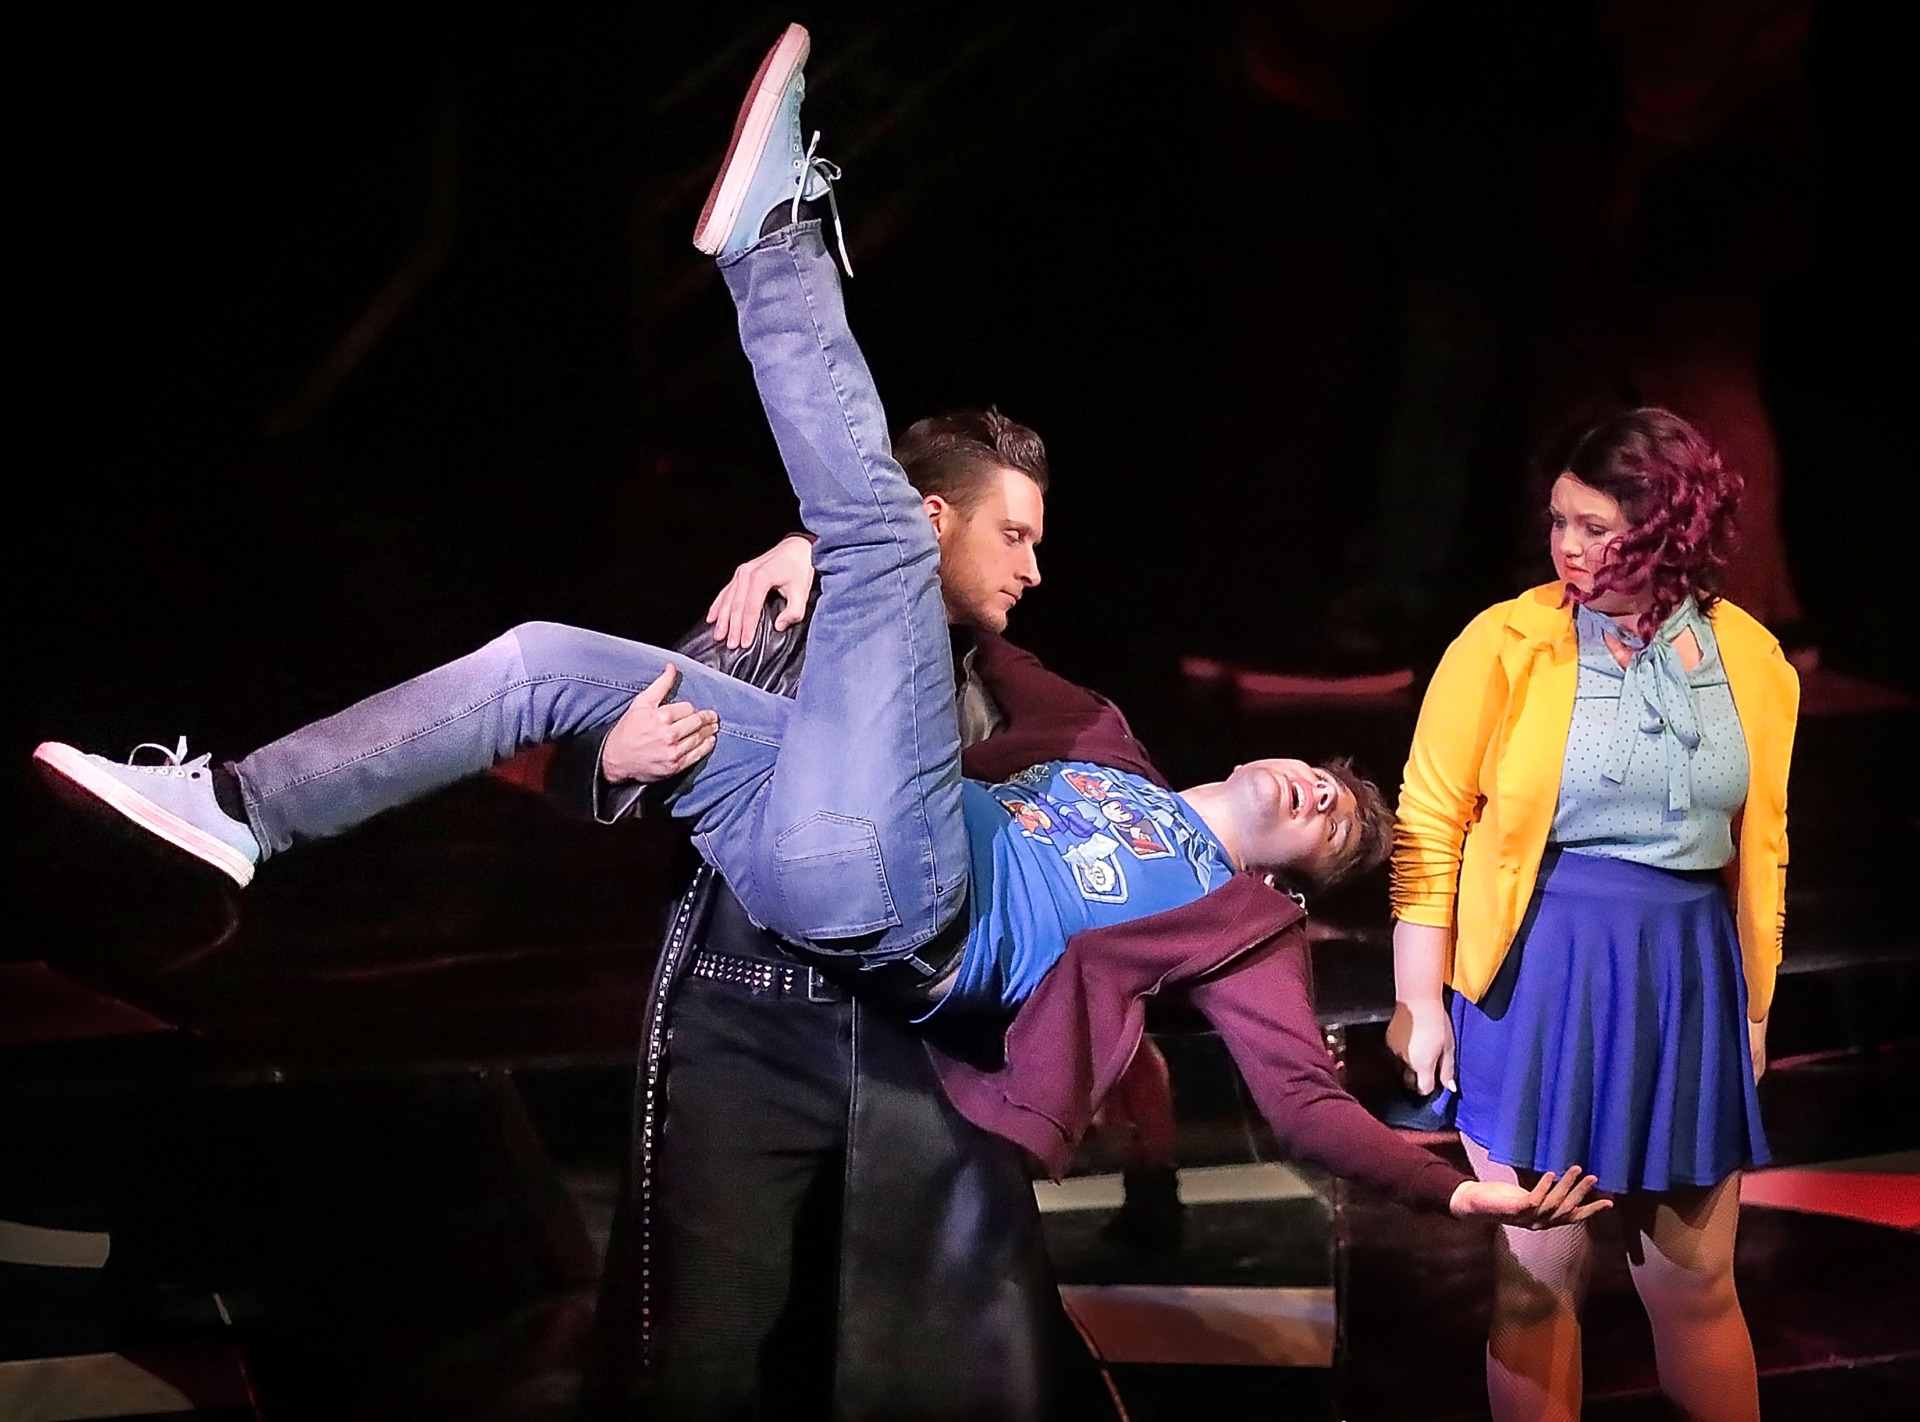 "<strong>Toby Davis (center), playing Jeremy, makes a desperate bid for popularity with the help of Landon Ricker (left) during a performance of the musical ""Be More Chill"" by the University of Memphis Department of Theatre and Dance on Feb. 15, 2019, for area high school students. The musical premiered on Broadway on Feb. 13. </strong> (Jim Weber/Daily Memphian)"